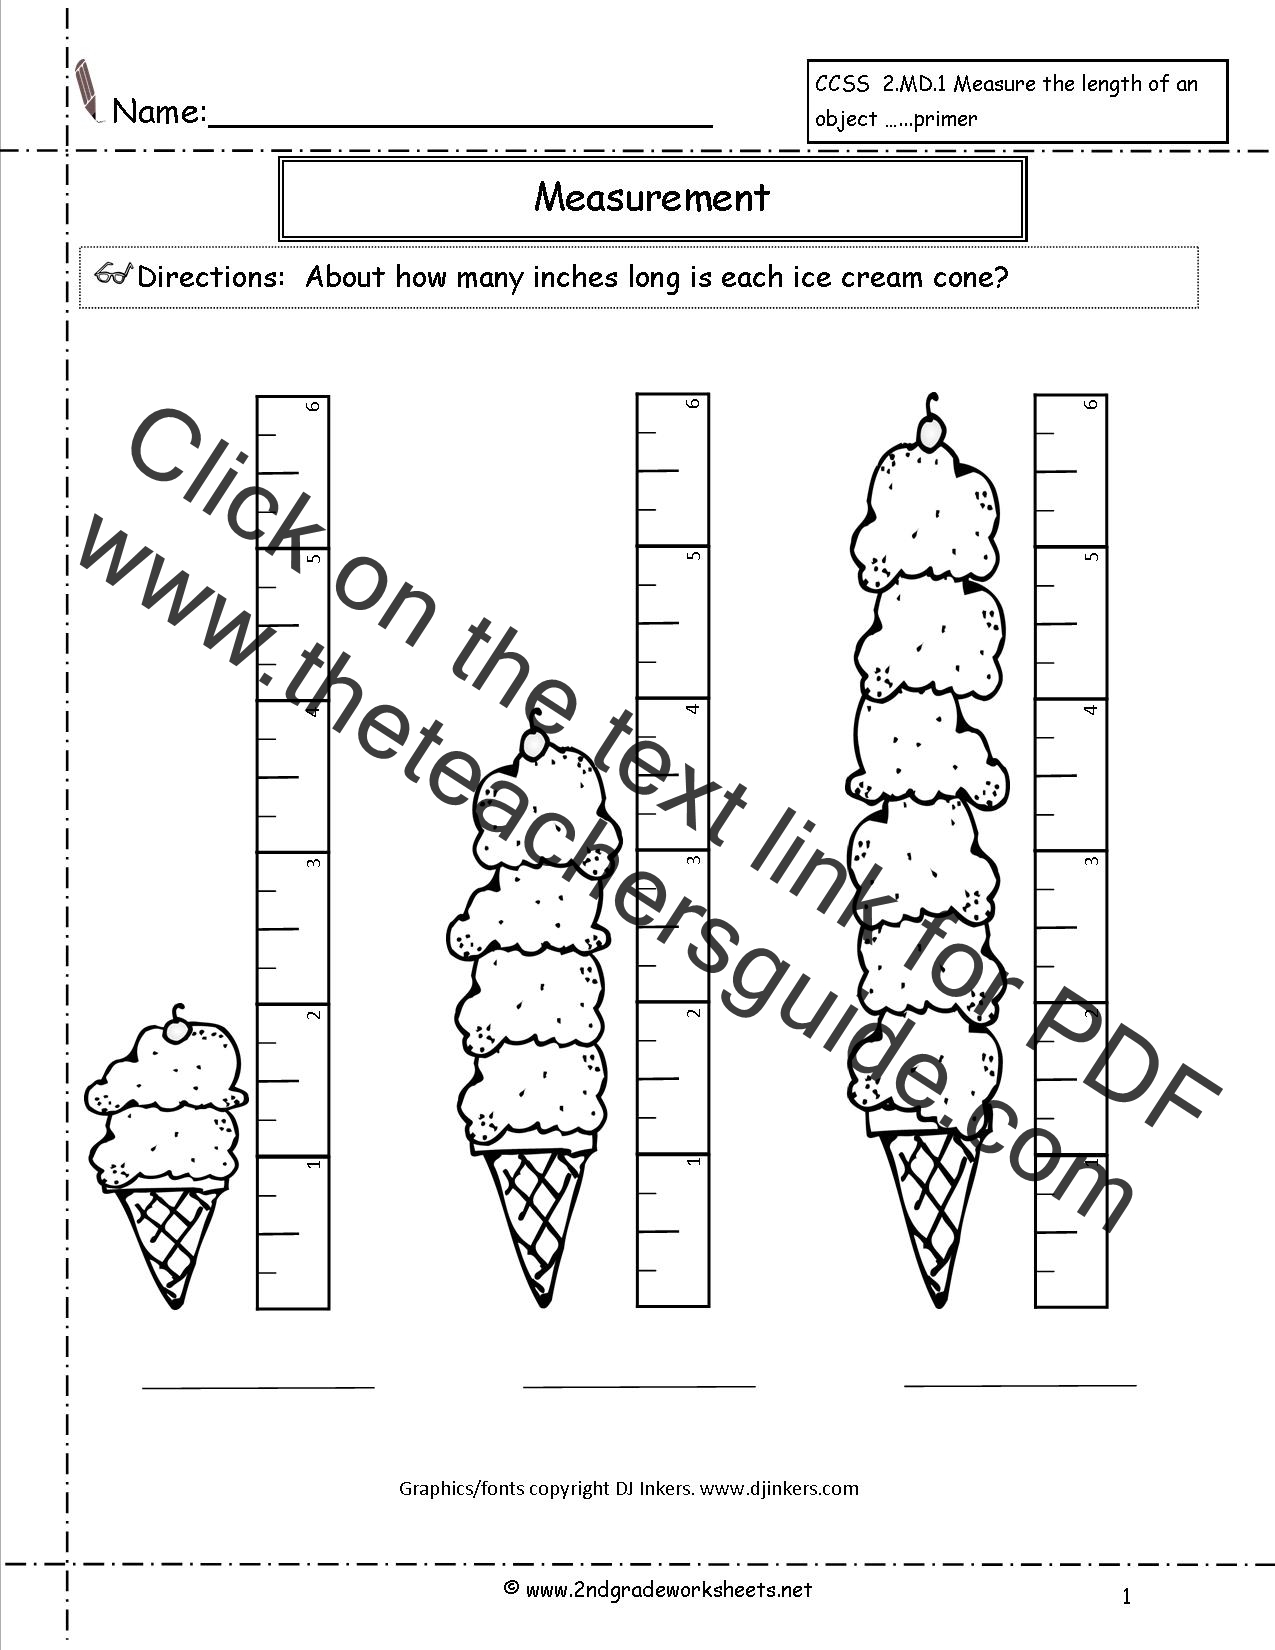 Worksheet 604780 Measurement Worksheets for Kindergarten Free – Measurement Worksheets for Kindergarten